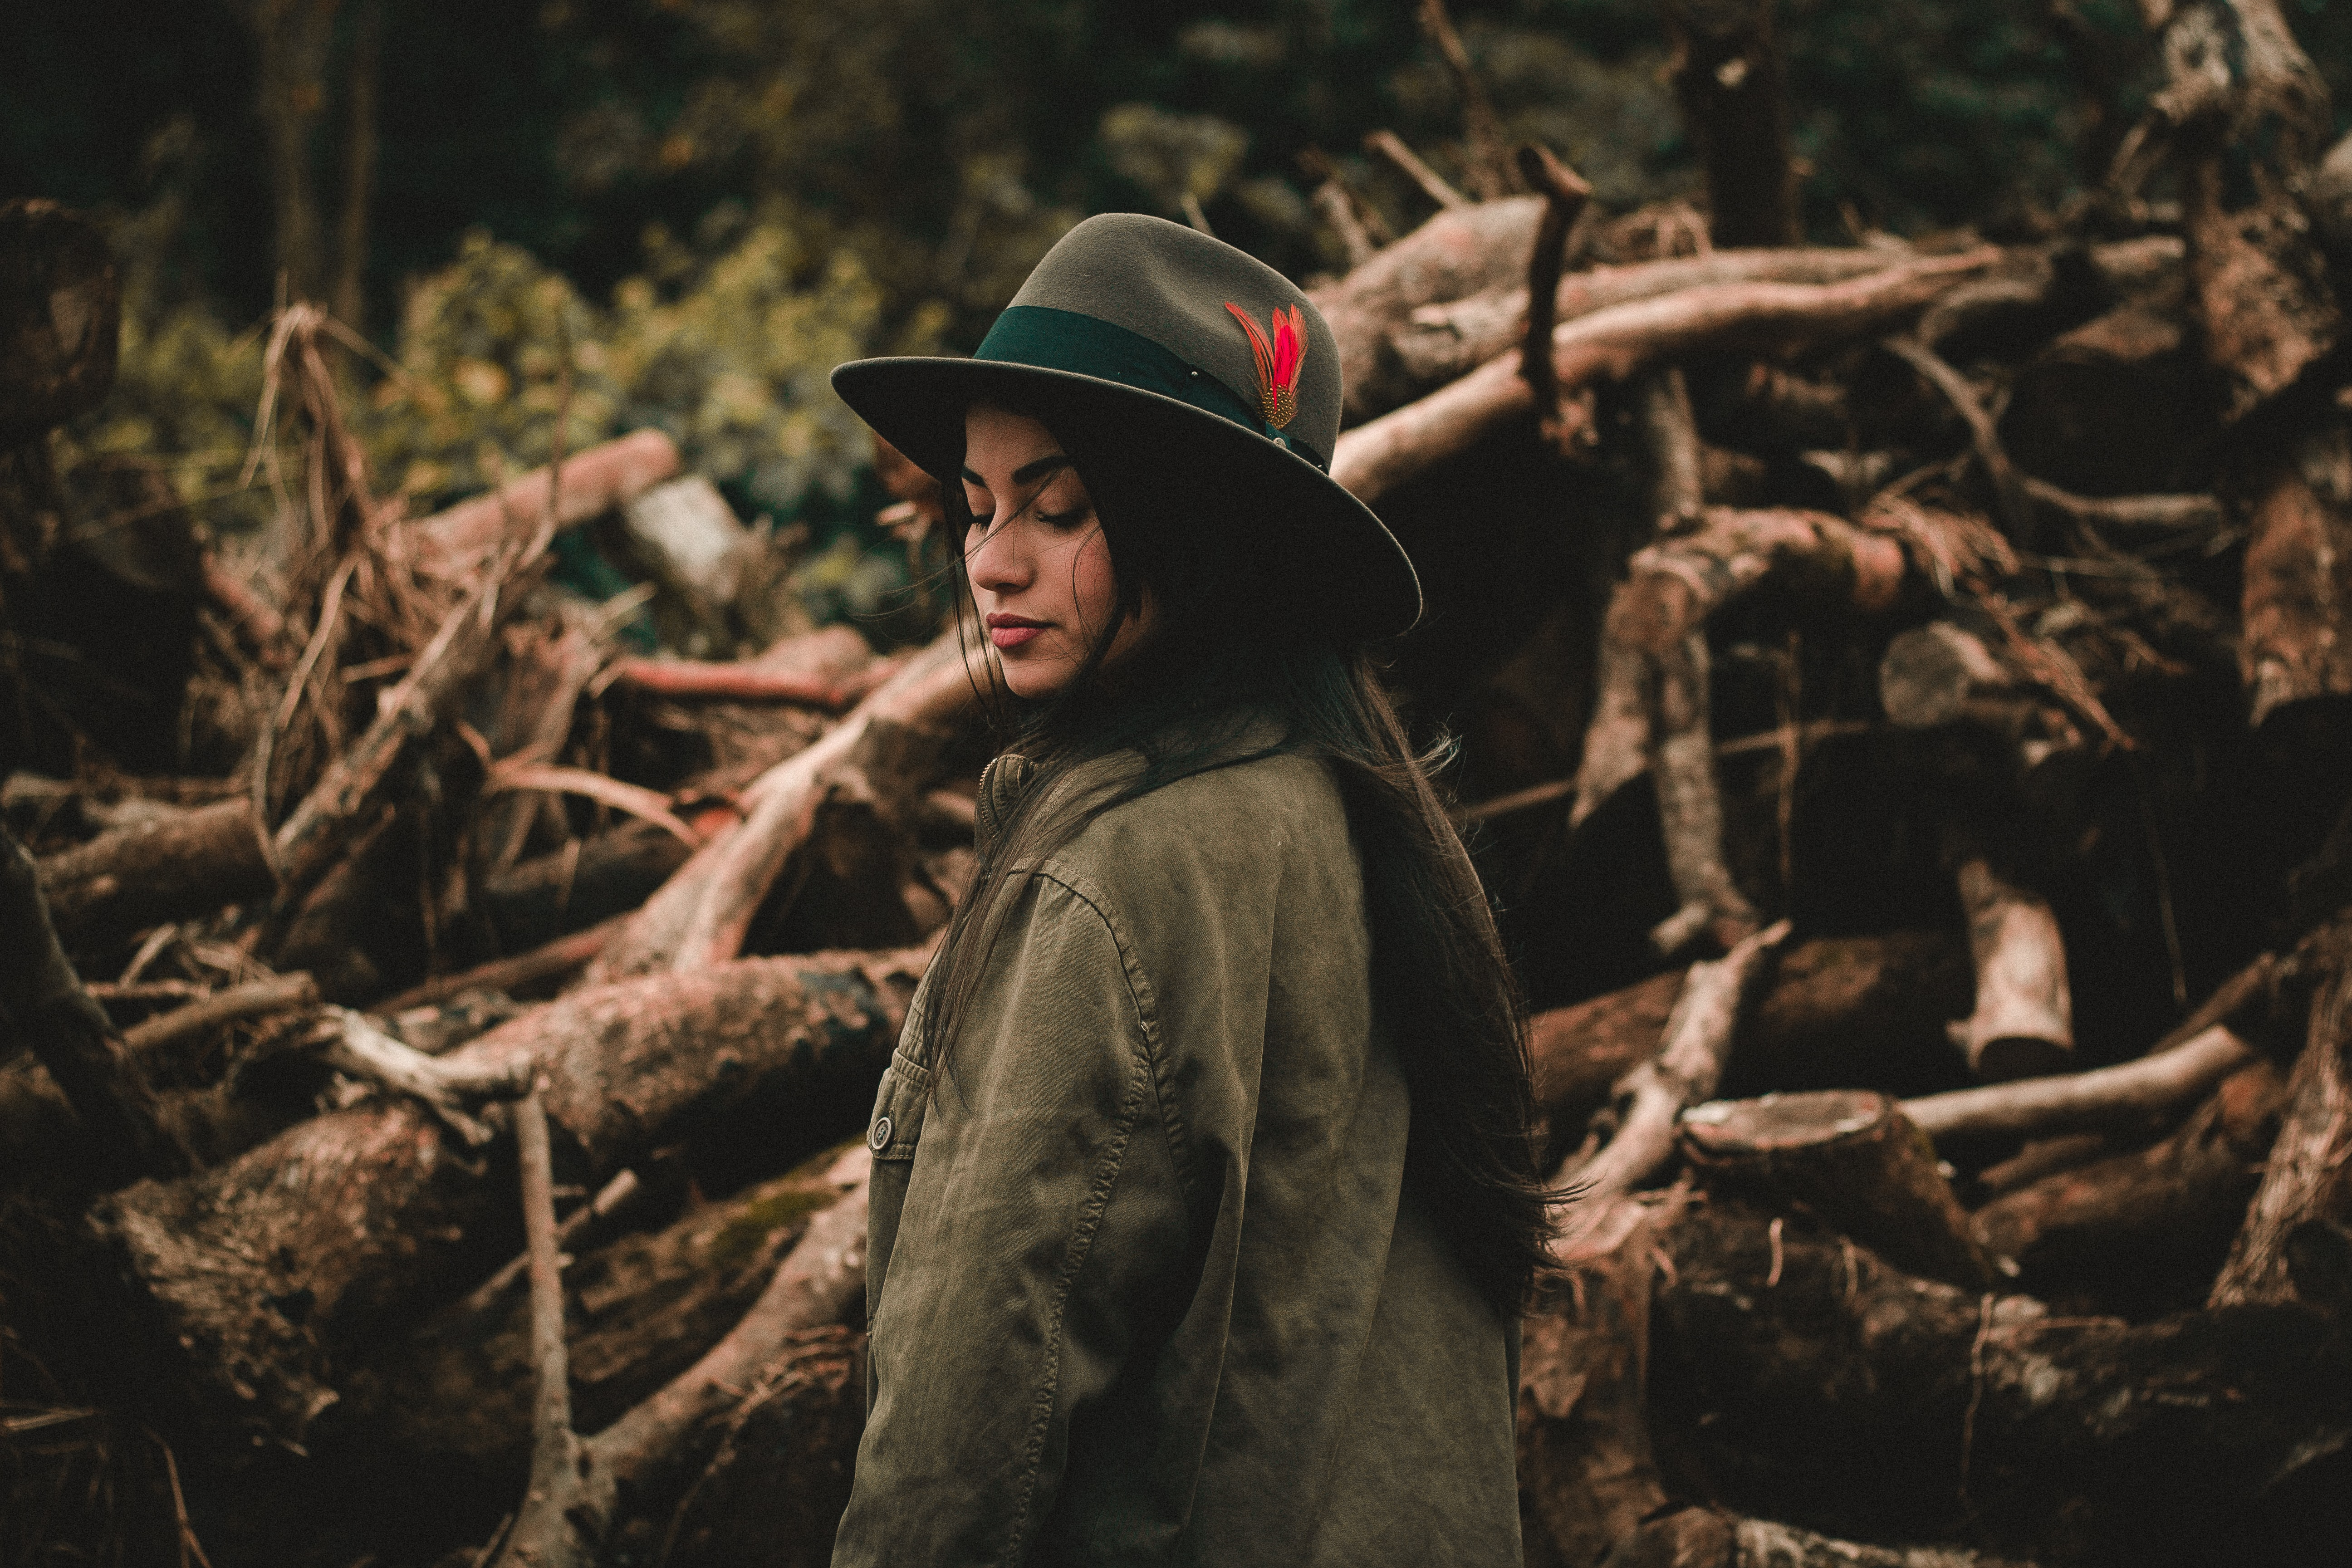 A woman in an olive green jacket and feathered hat stands in front of fallen trees